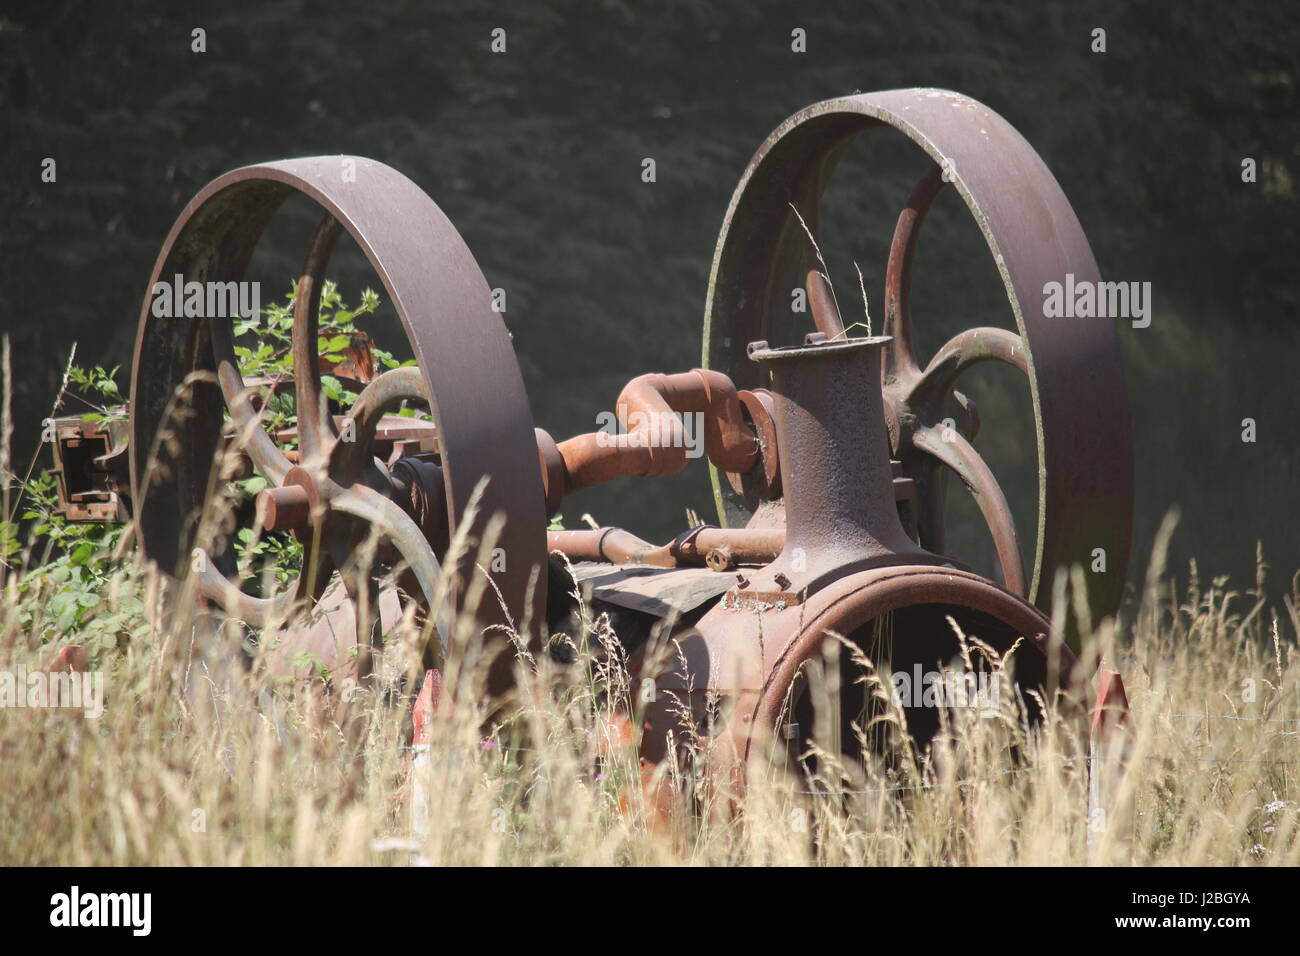 Final resting place of old steam engine in field of corn in Chile - Stock Image